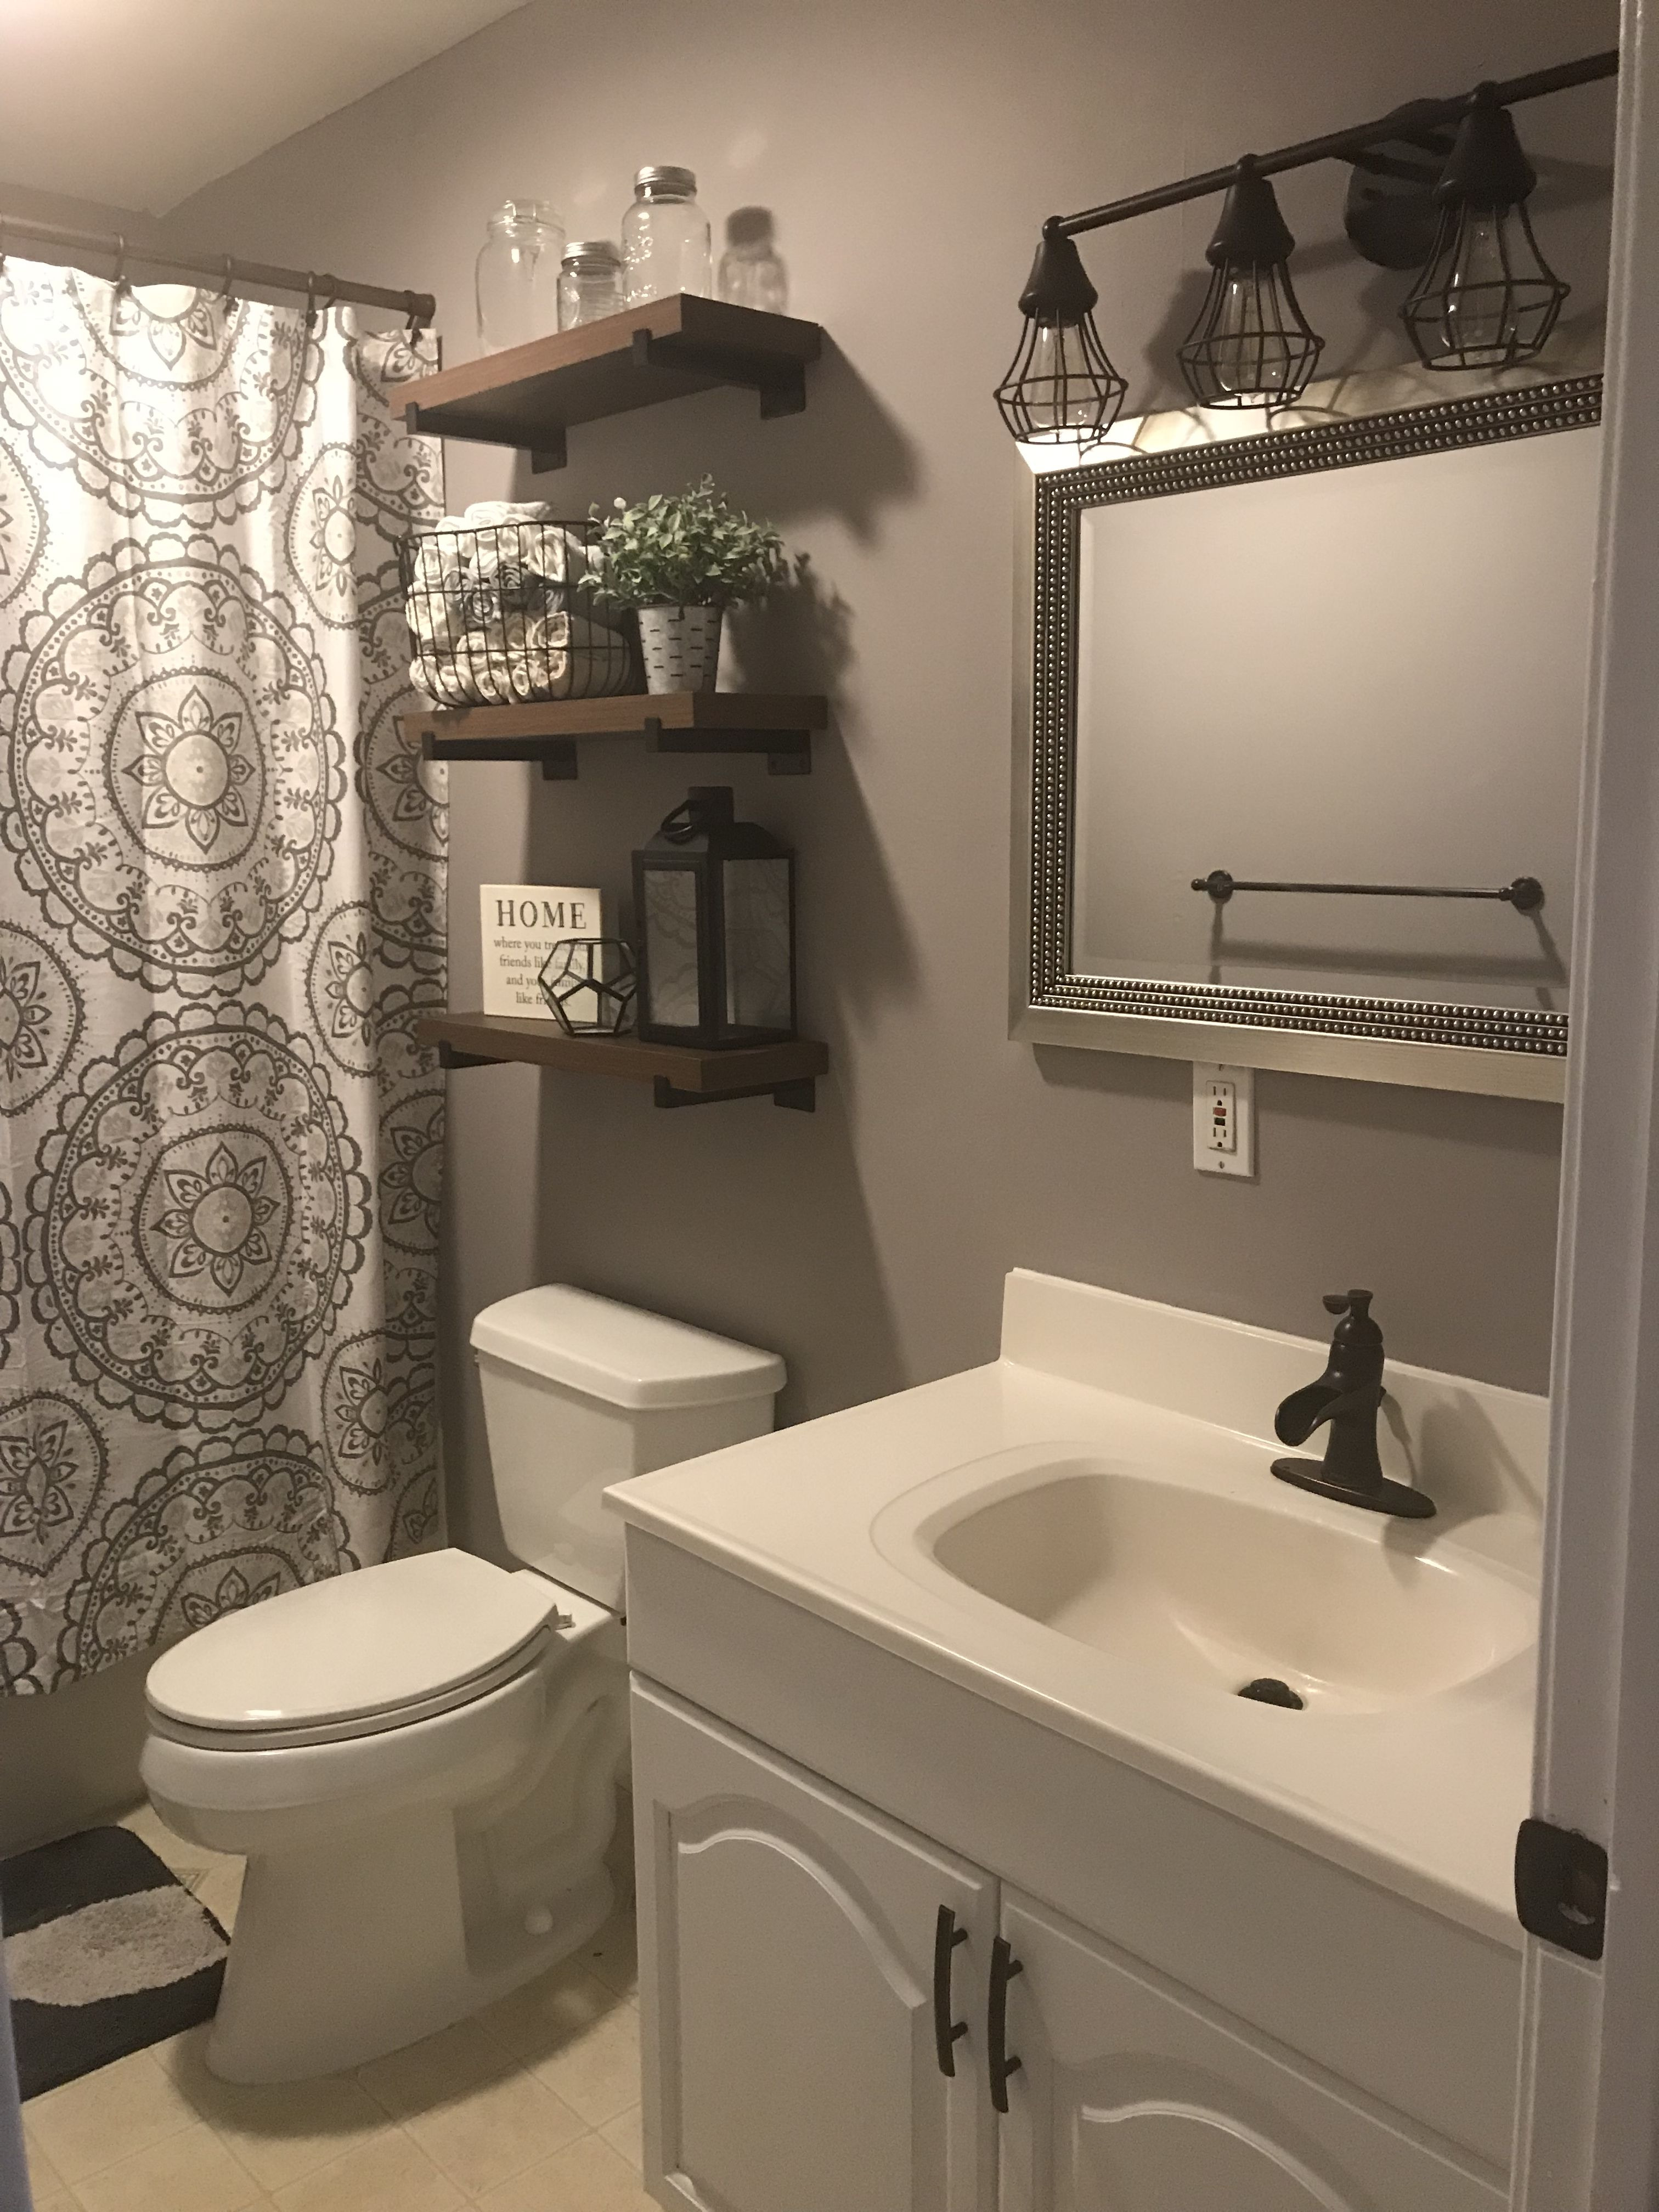 How Decorate A Small Bathroom Inspirational Our Updated Bathroom Decor In 2019